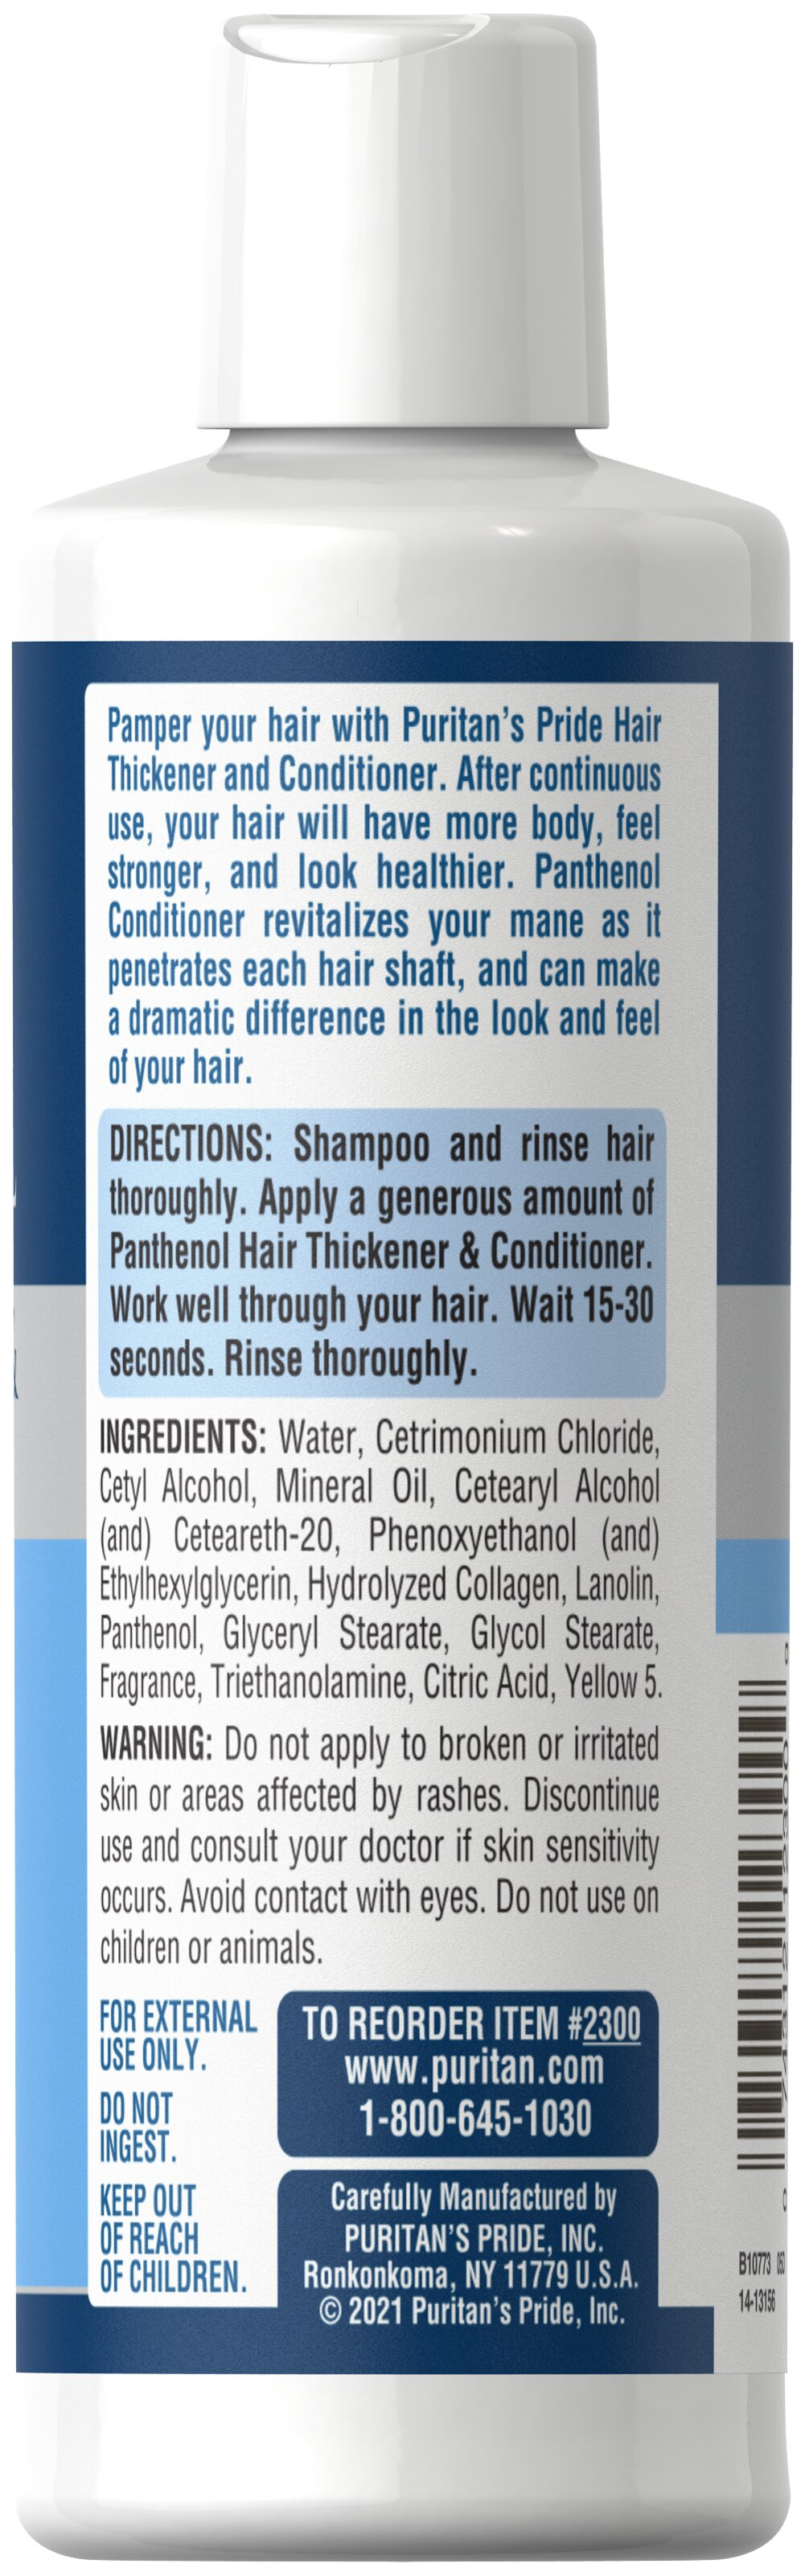 Panthenol Hair Thickener & Conditioner Thumbnail Alternate Bottle View